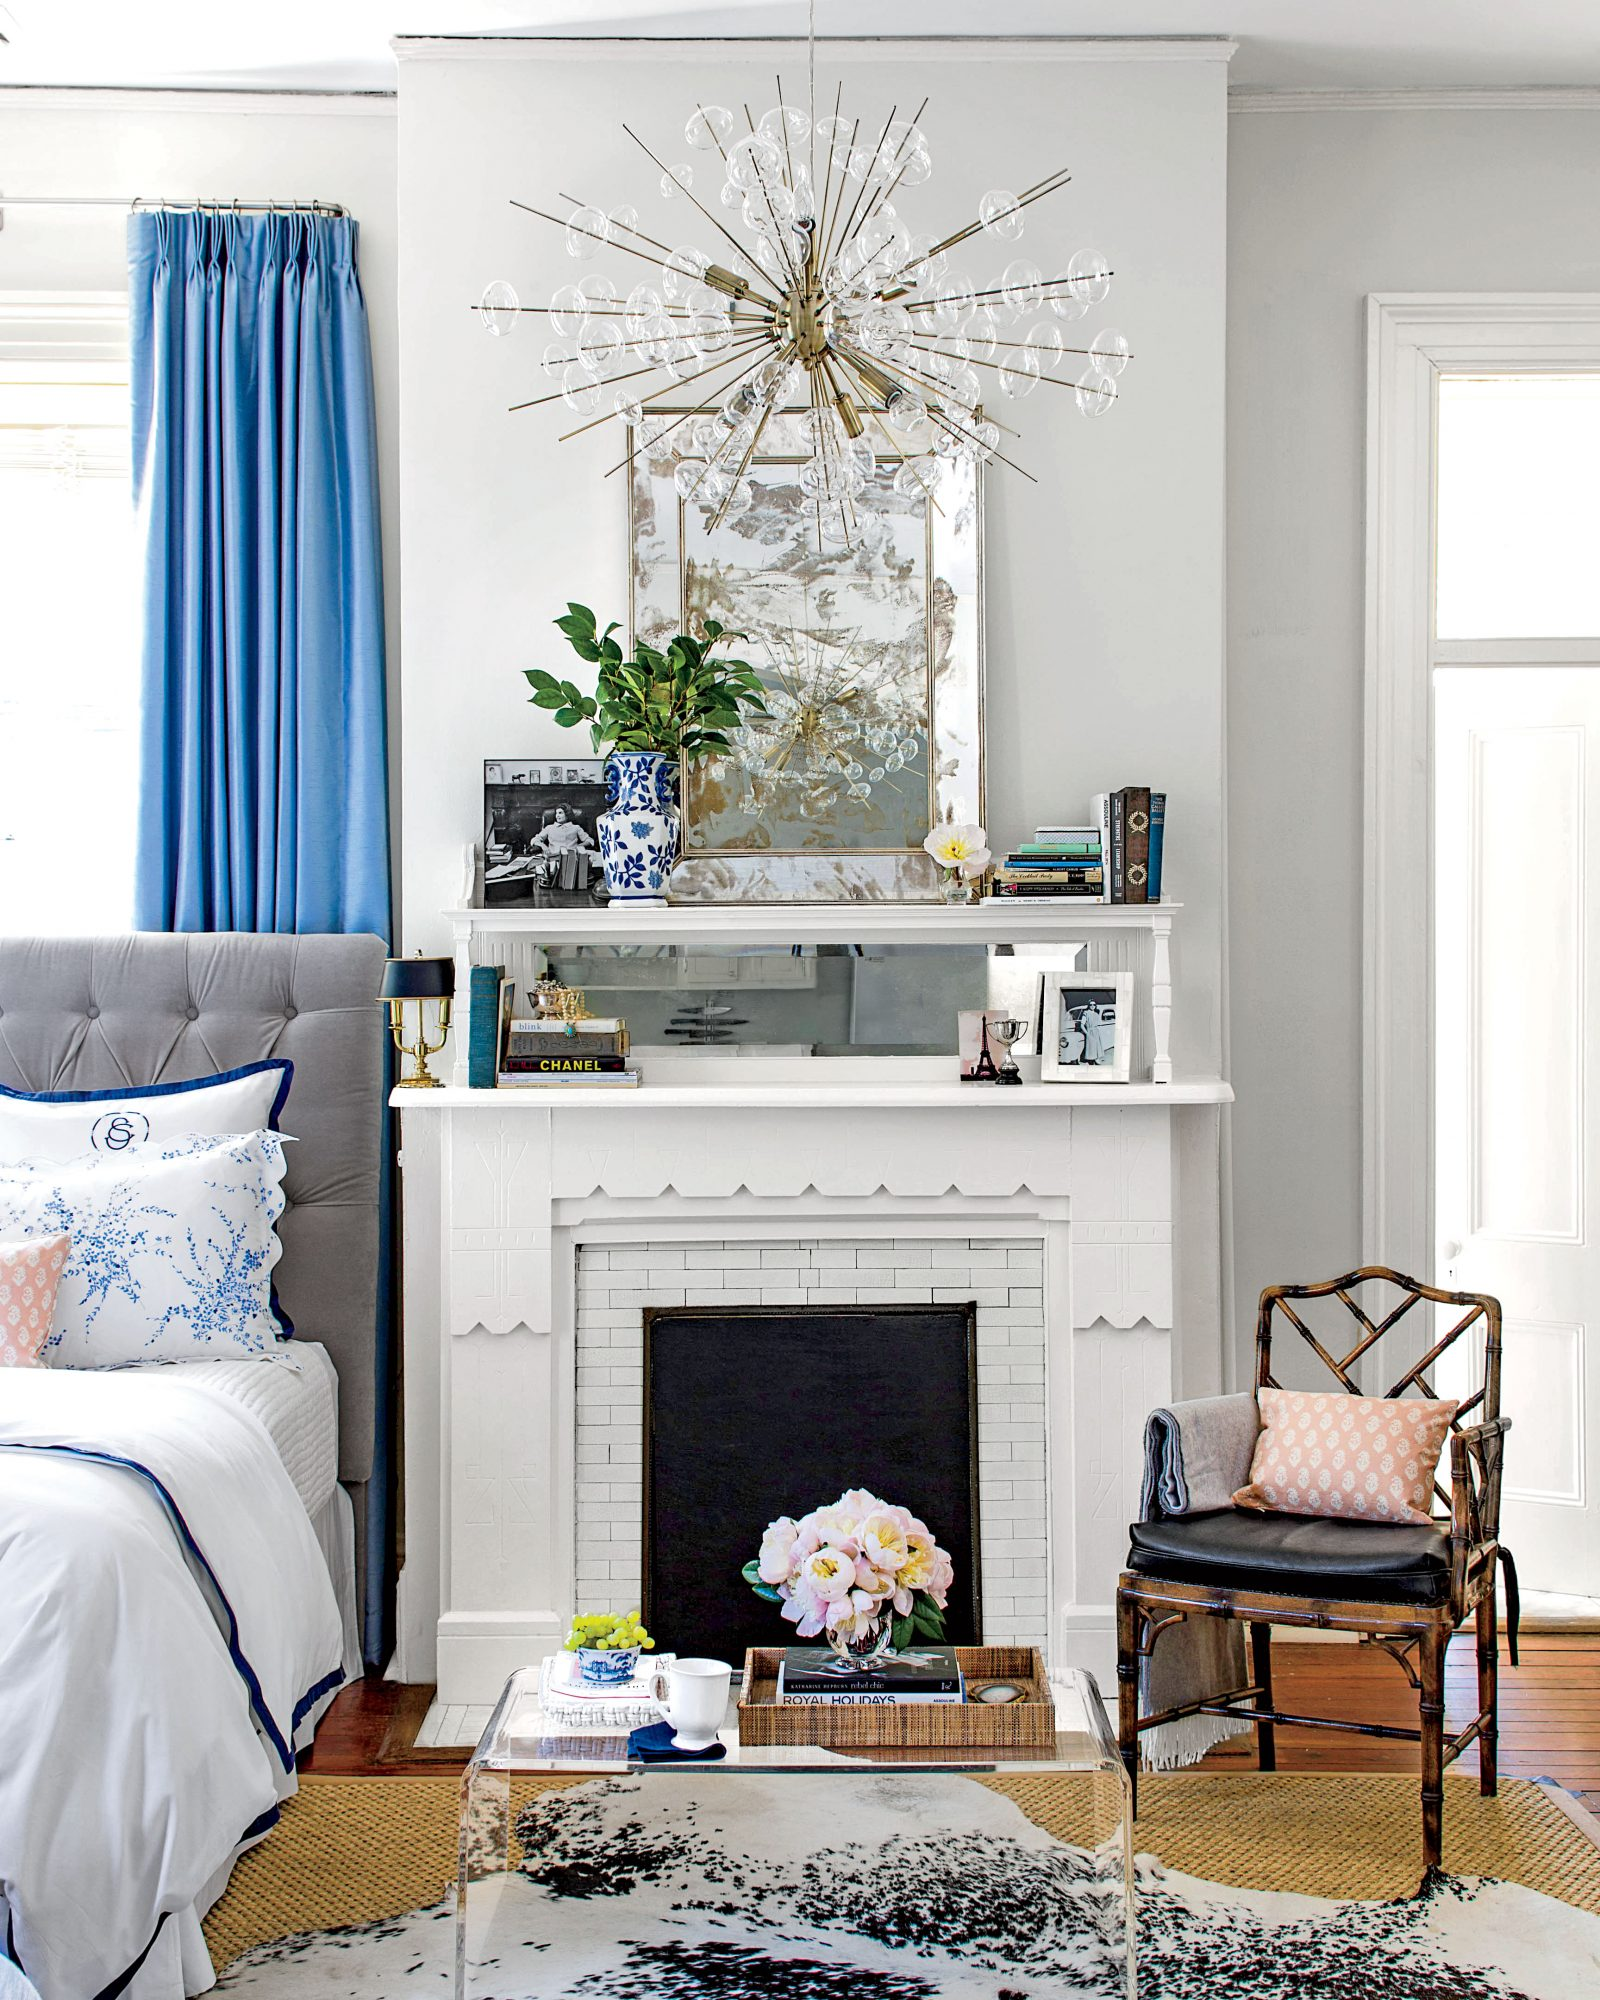 Studio apartment mantel and bed